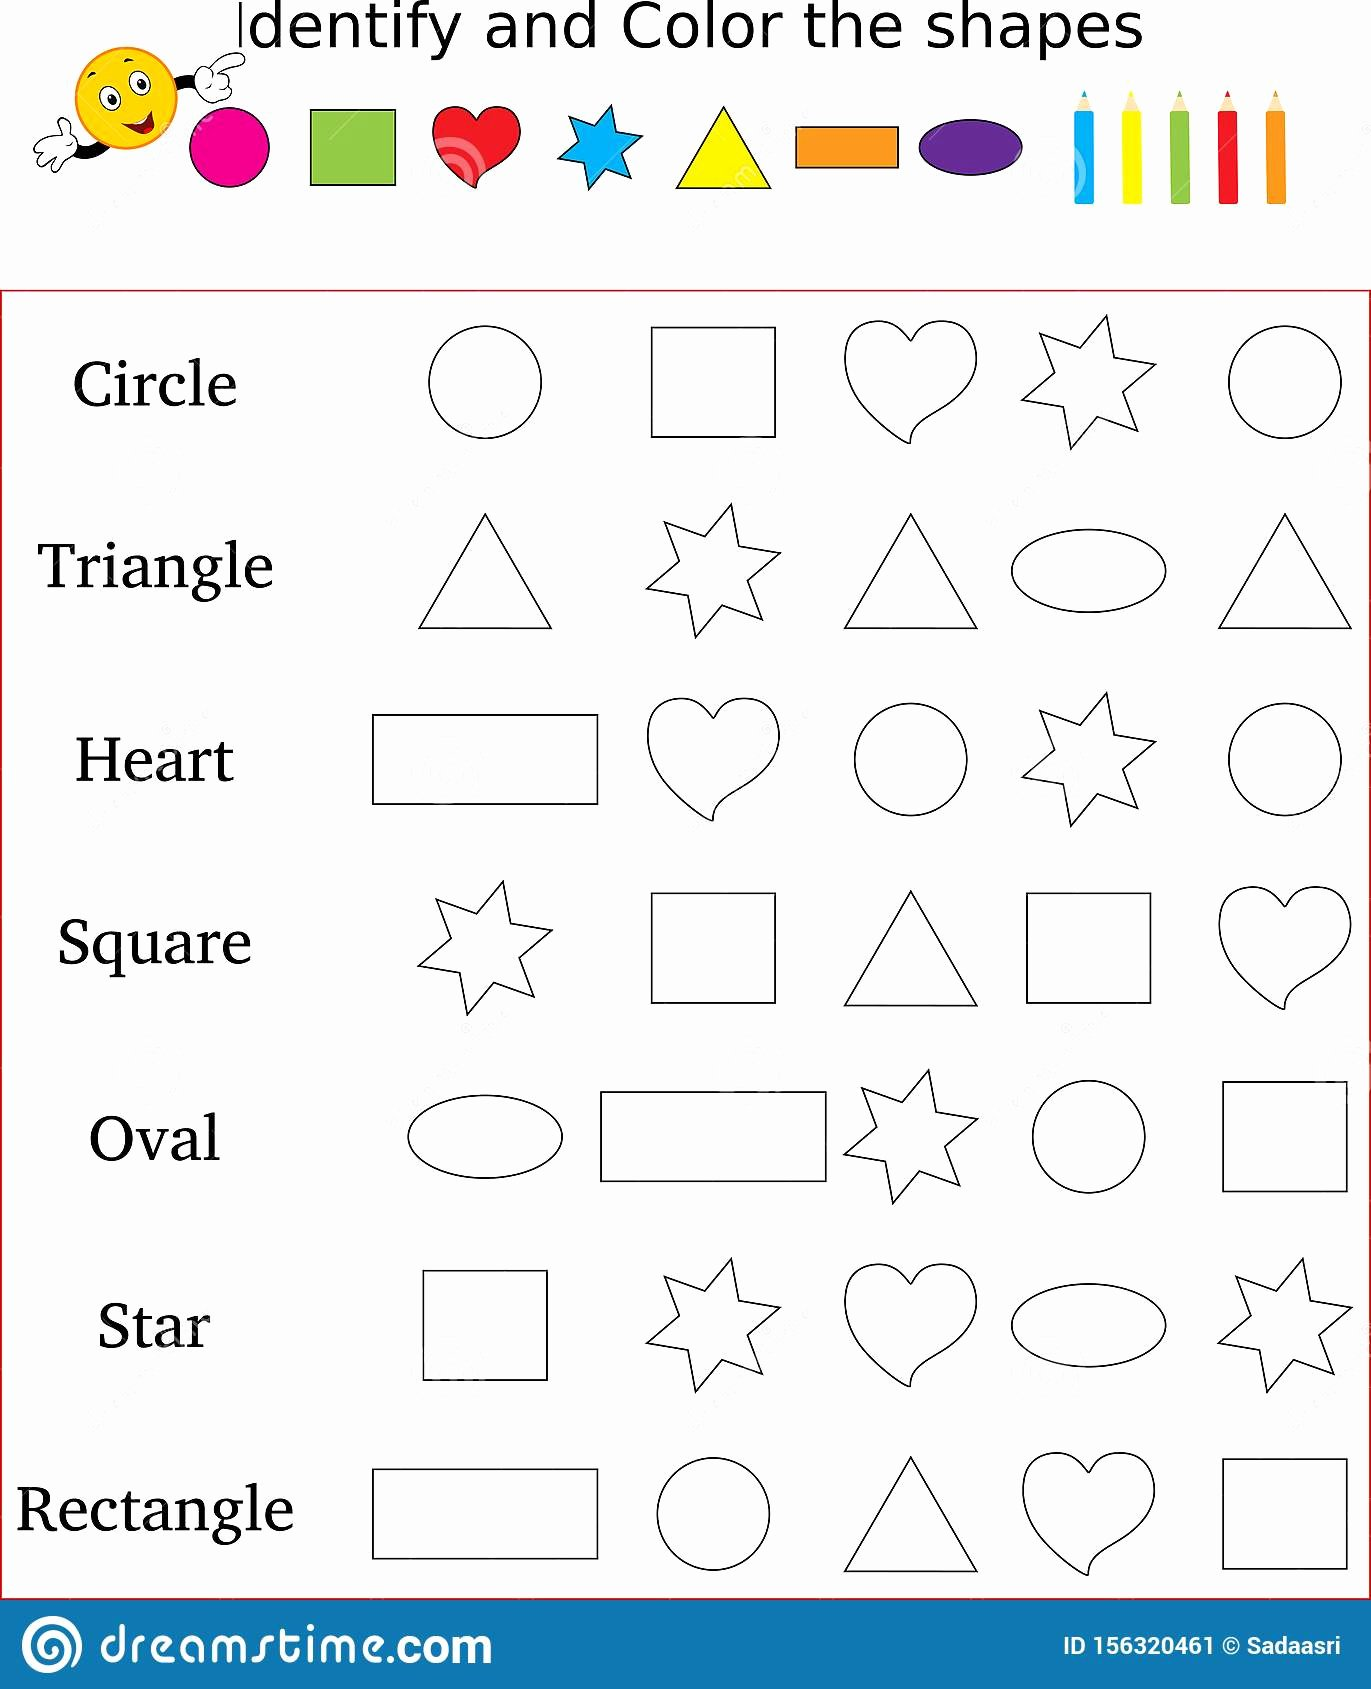 Identifying Shapes Worksheets for Preschoolers Best Of Identify and Color the Correct Shape Worksheet Stock Image